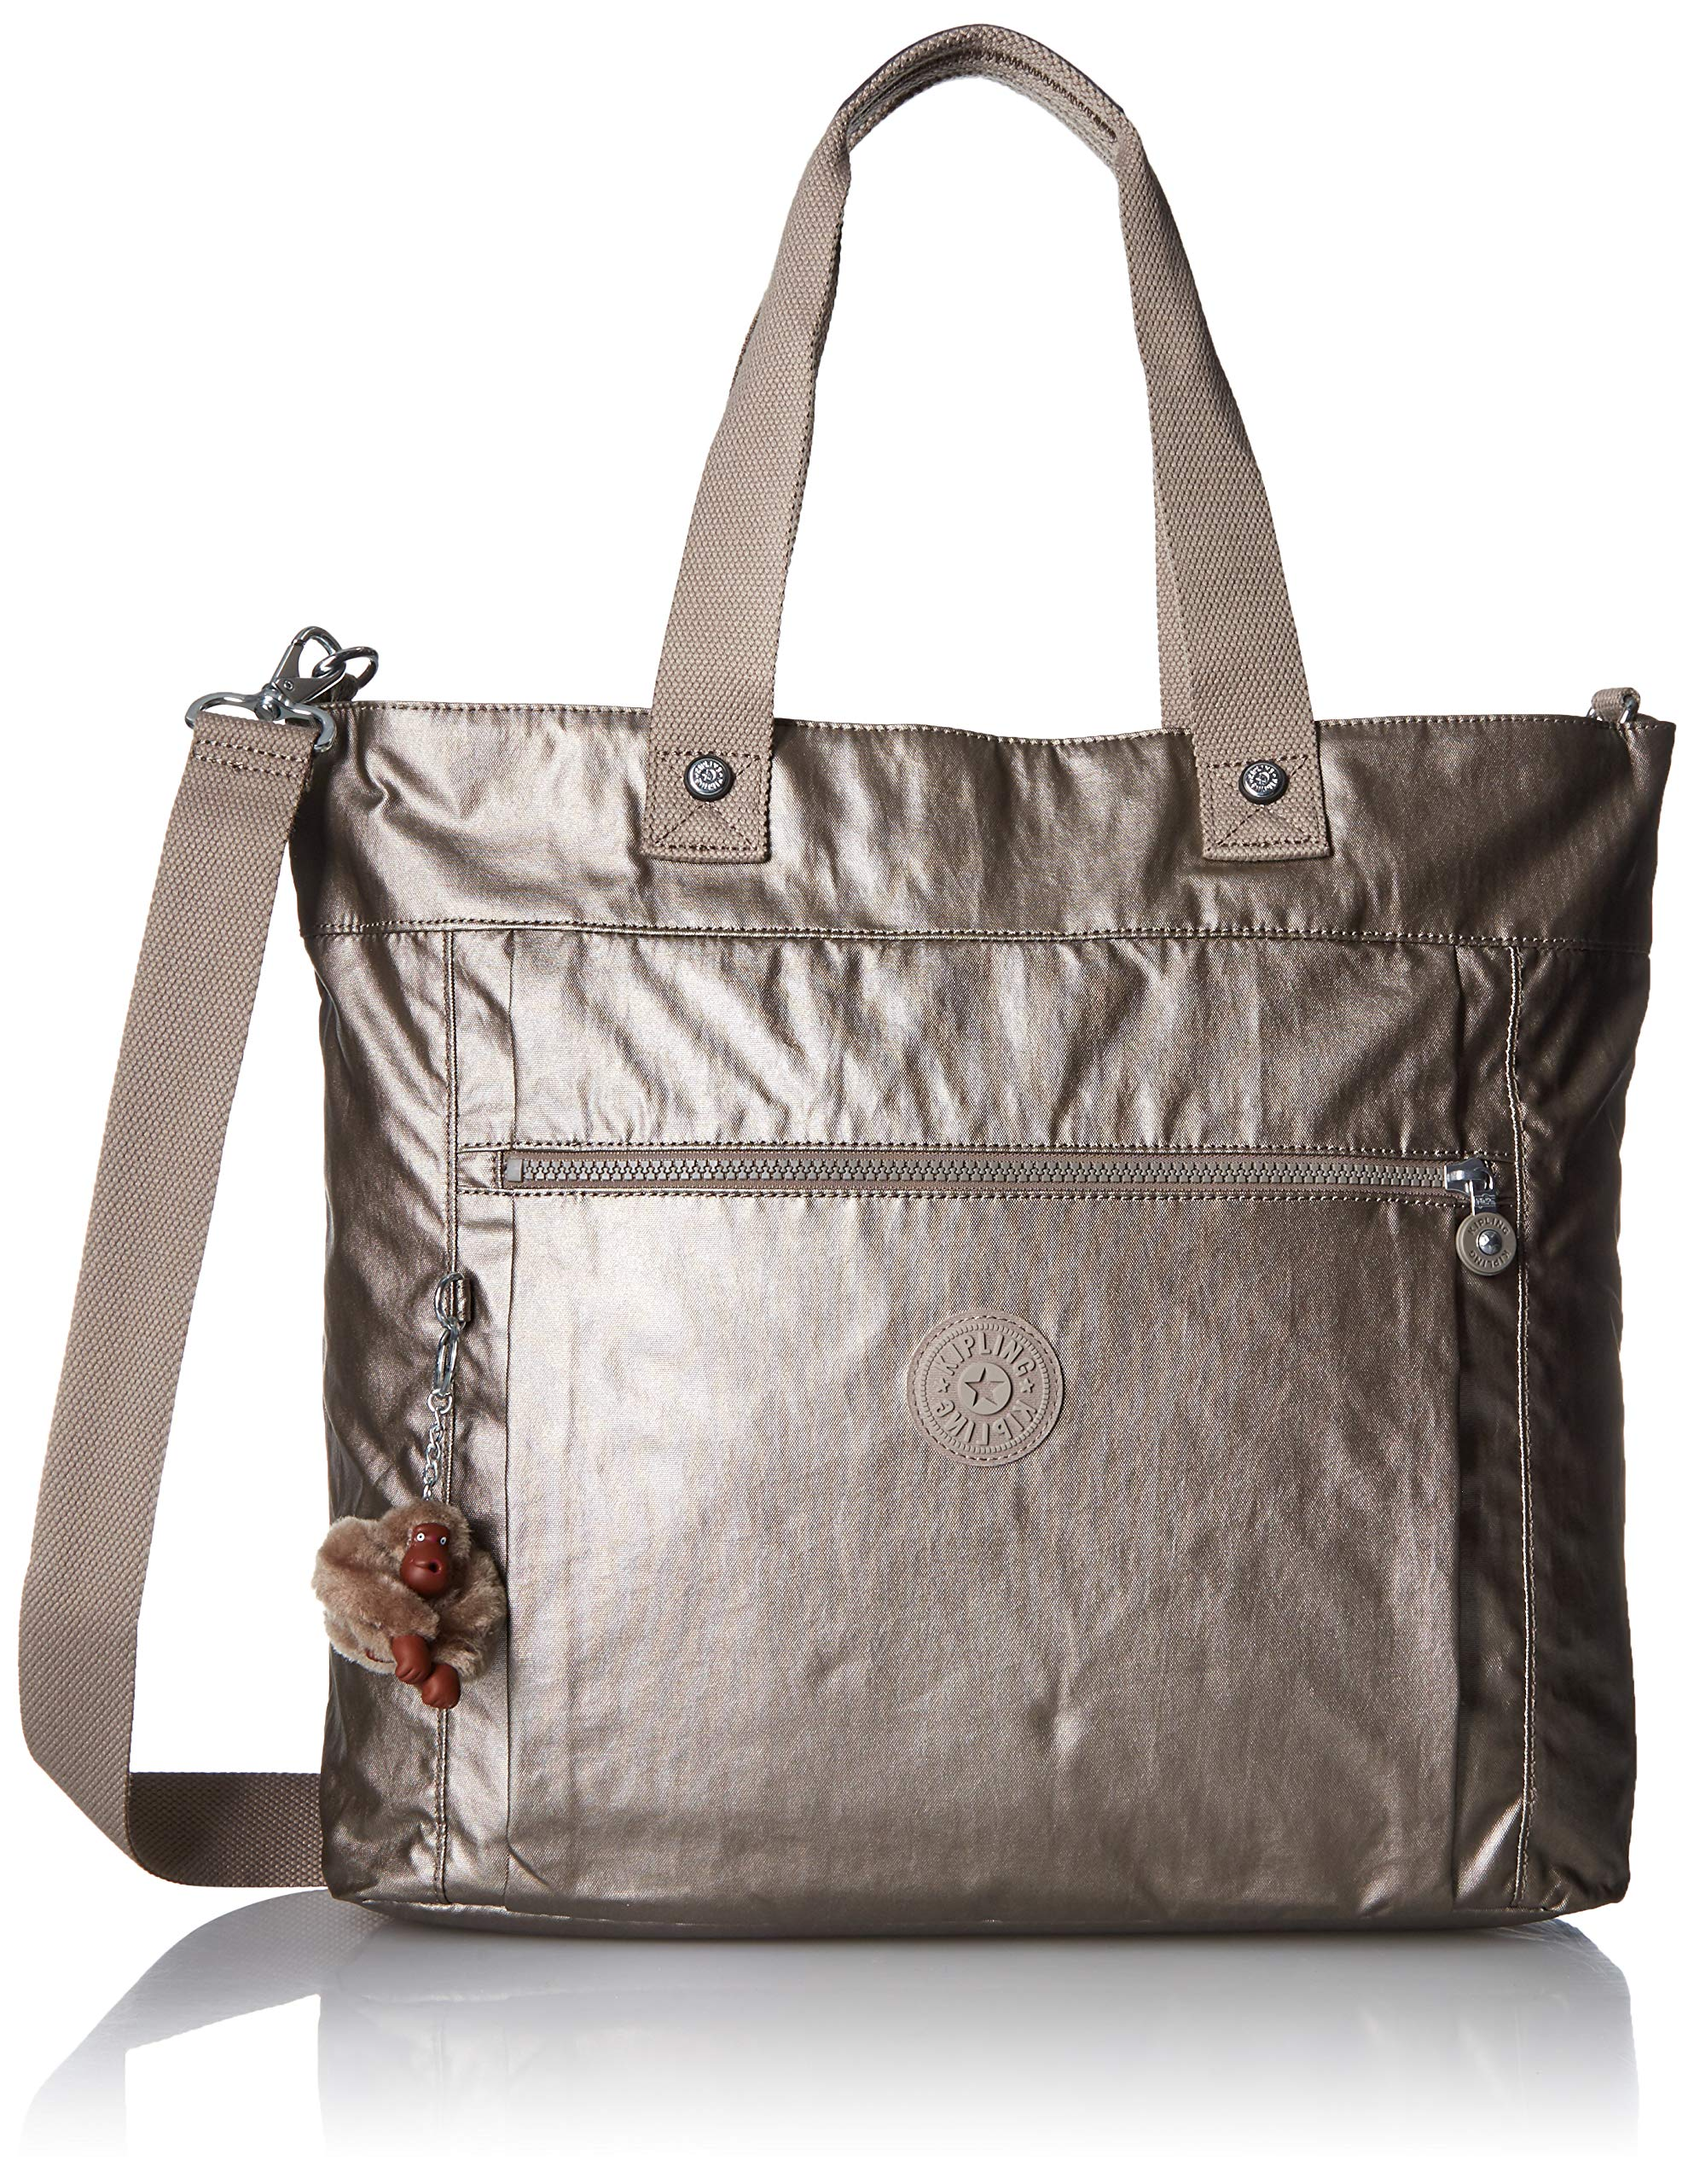 Kipling Lizzie Laptop Tote Bag, Removable, Adjustable Crossbody Strap, Zip Closure, metallic pewter